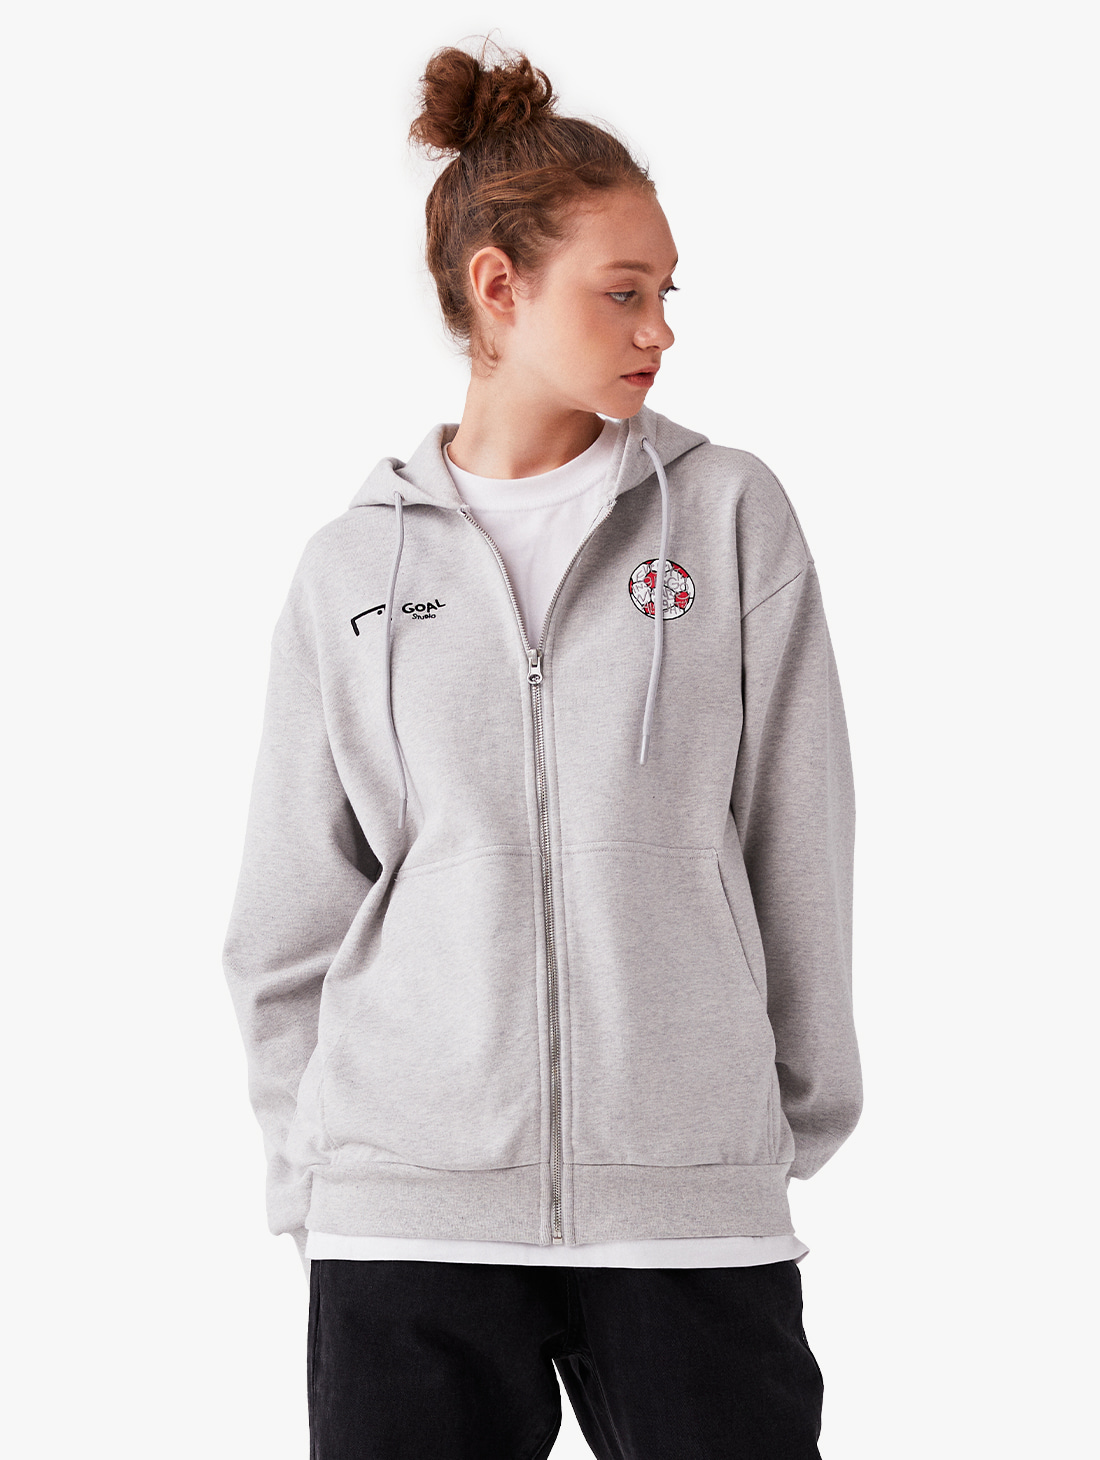 GOALSTUDIO CFC ZIP UP HOODIE (2 Colors)